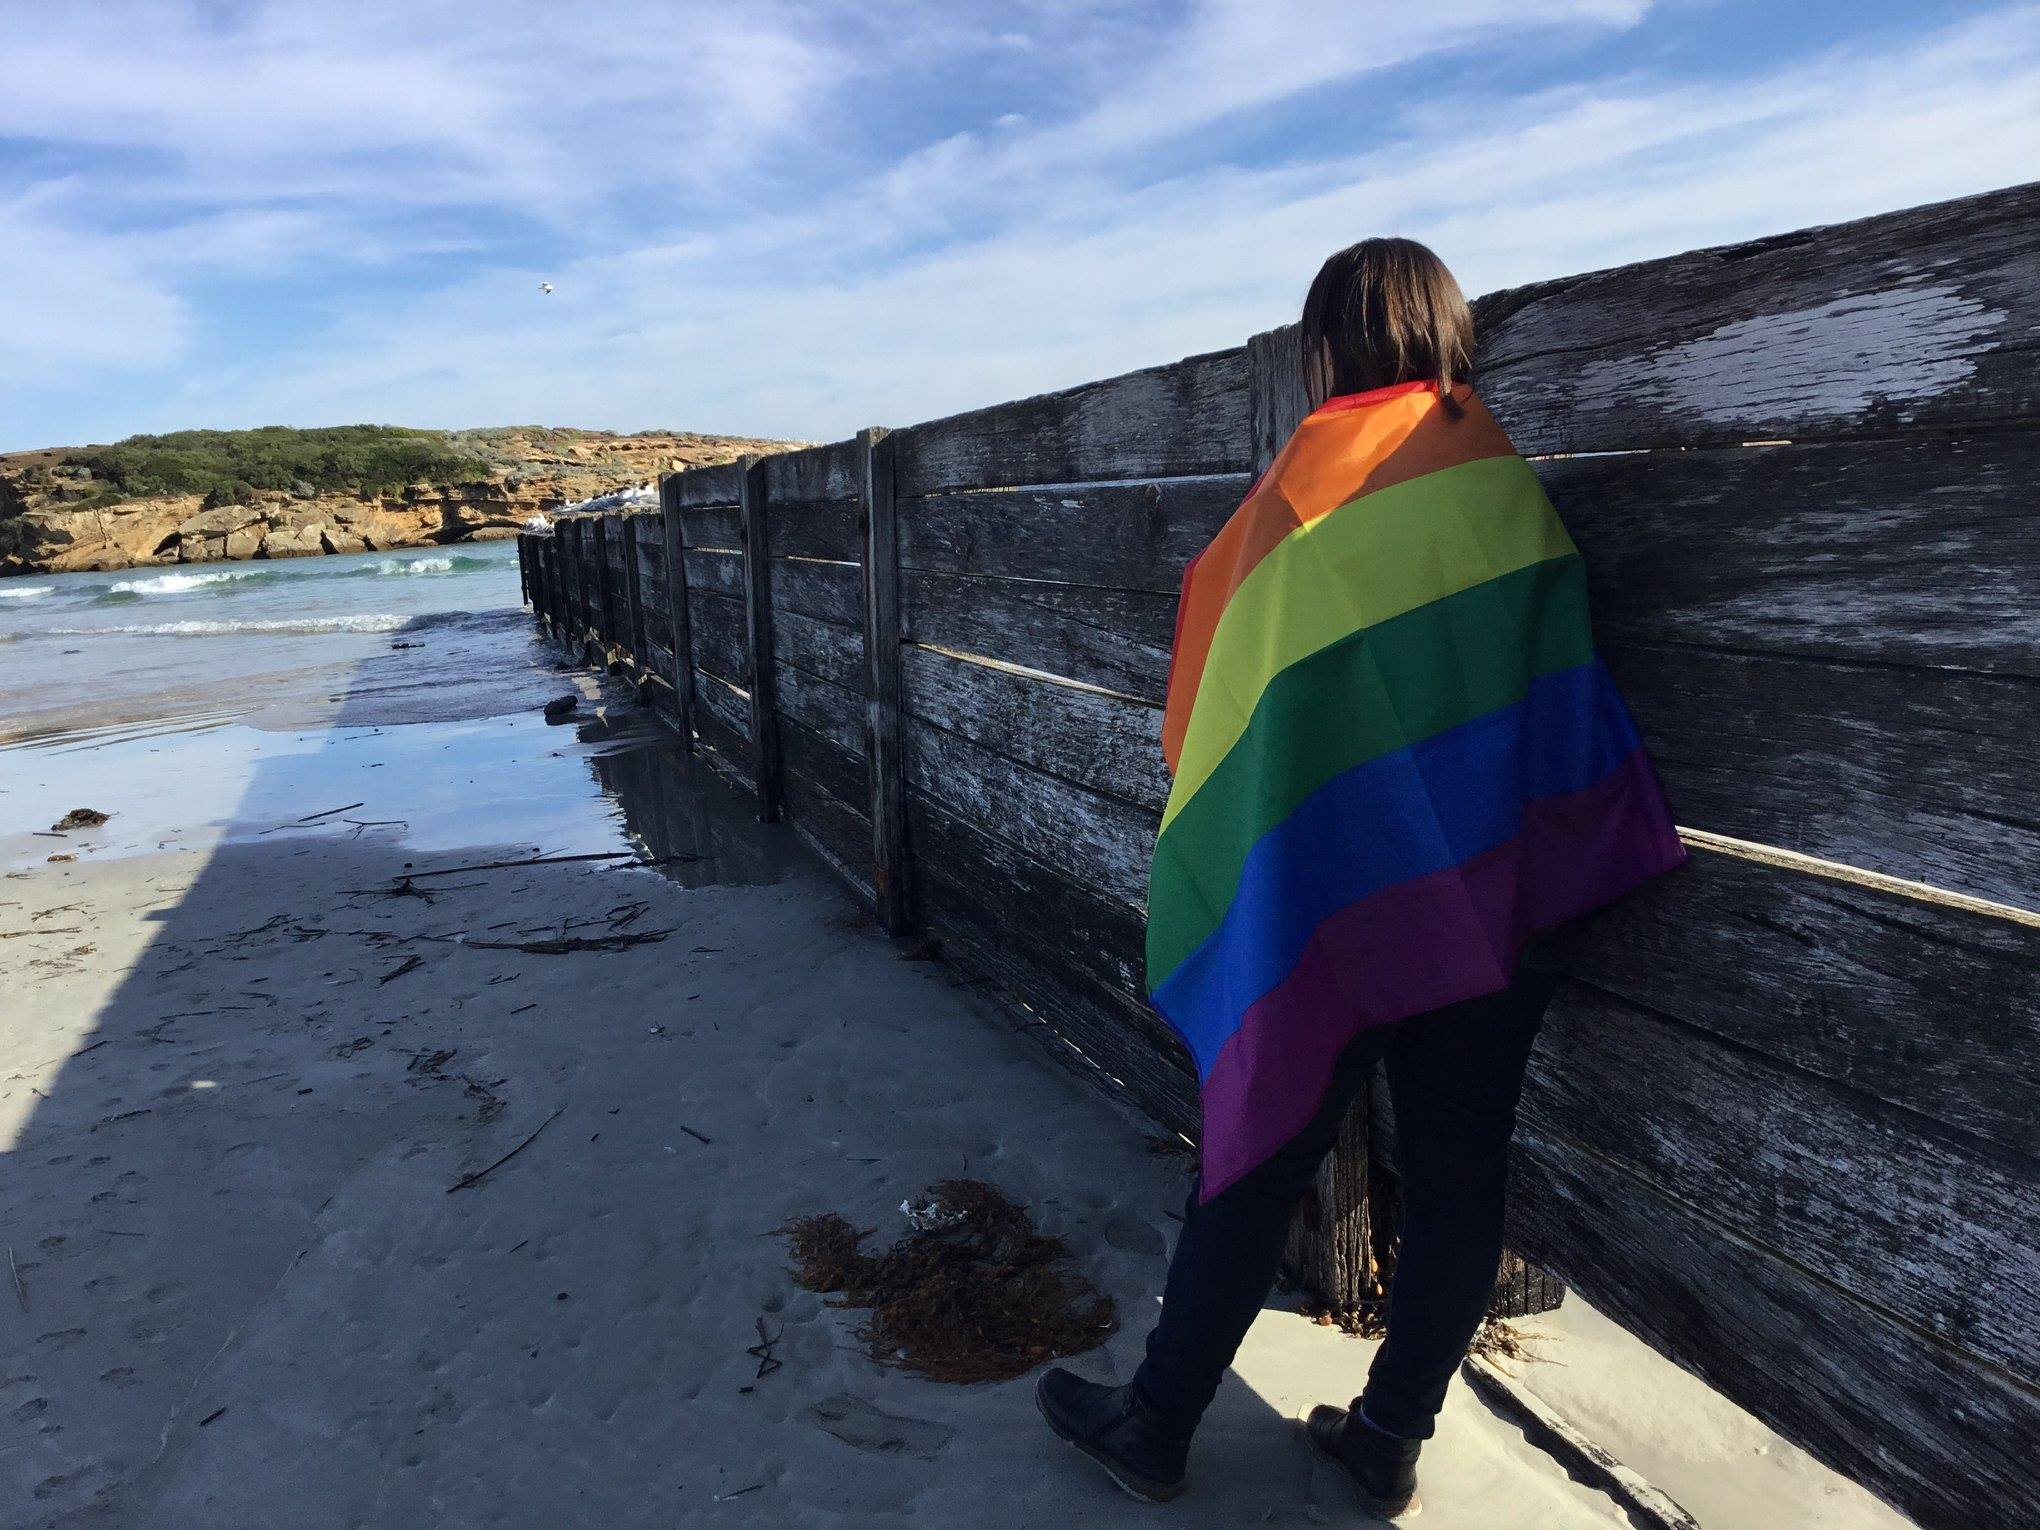 A person draped in a pride rainbow flag stands on a beach and looks out into the distance.